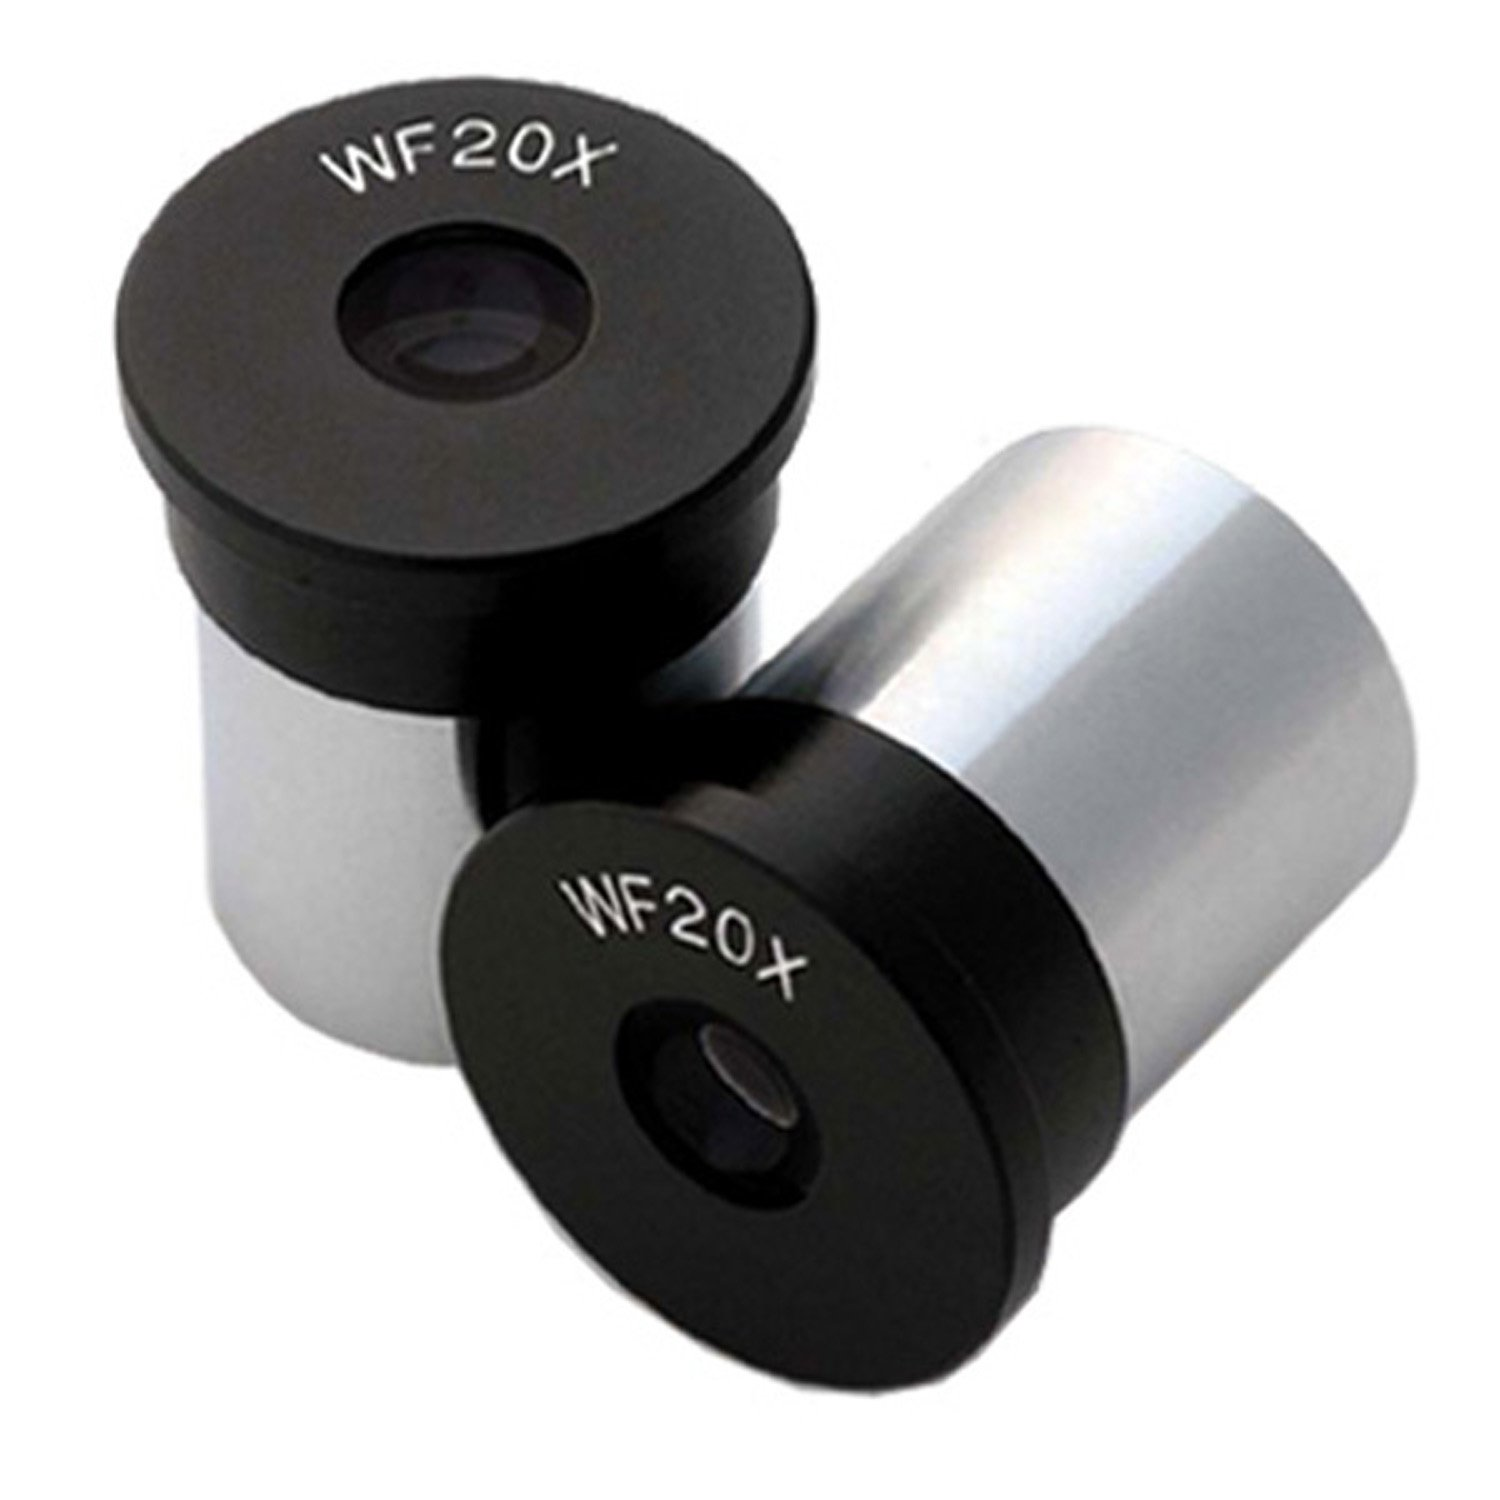 AmScope EP20X23 Pair of WF20X Microscope Eyepieces (23mm)